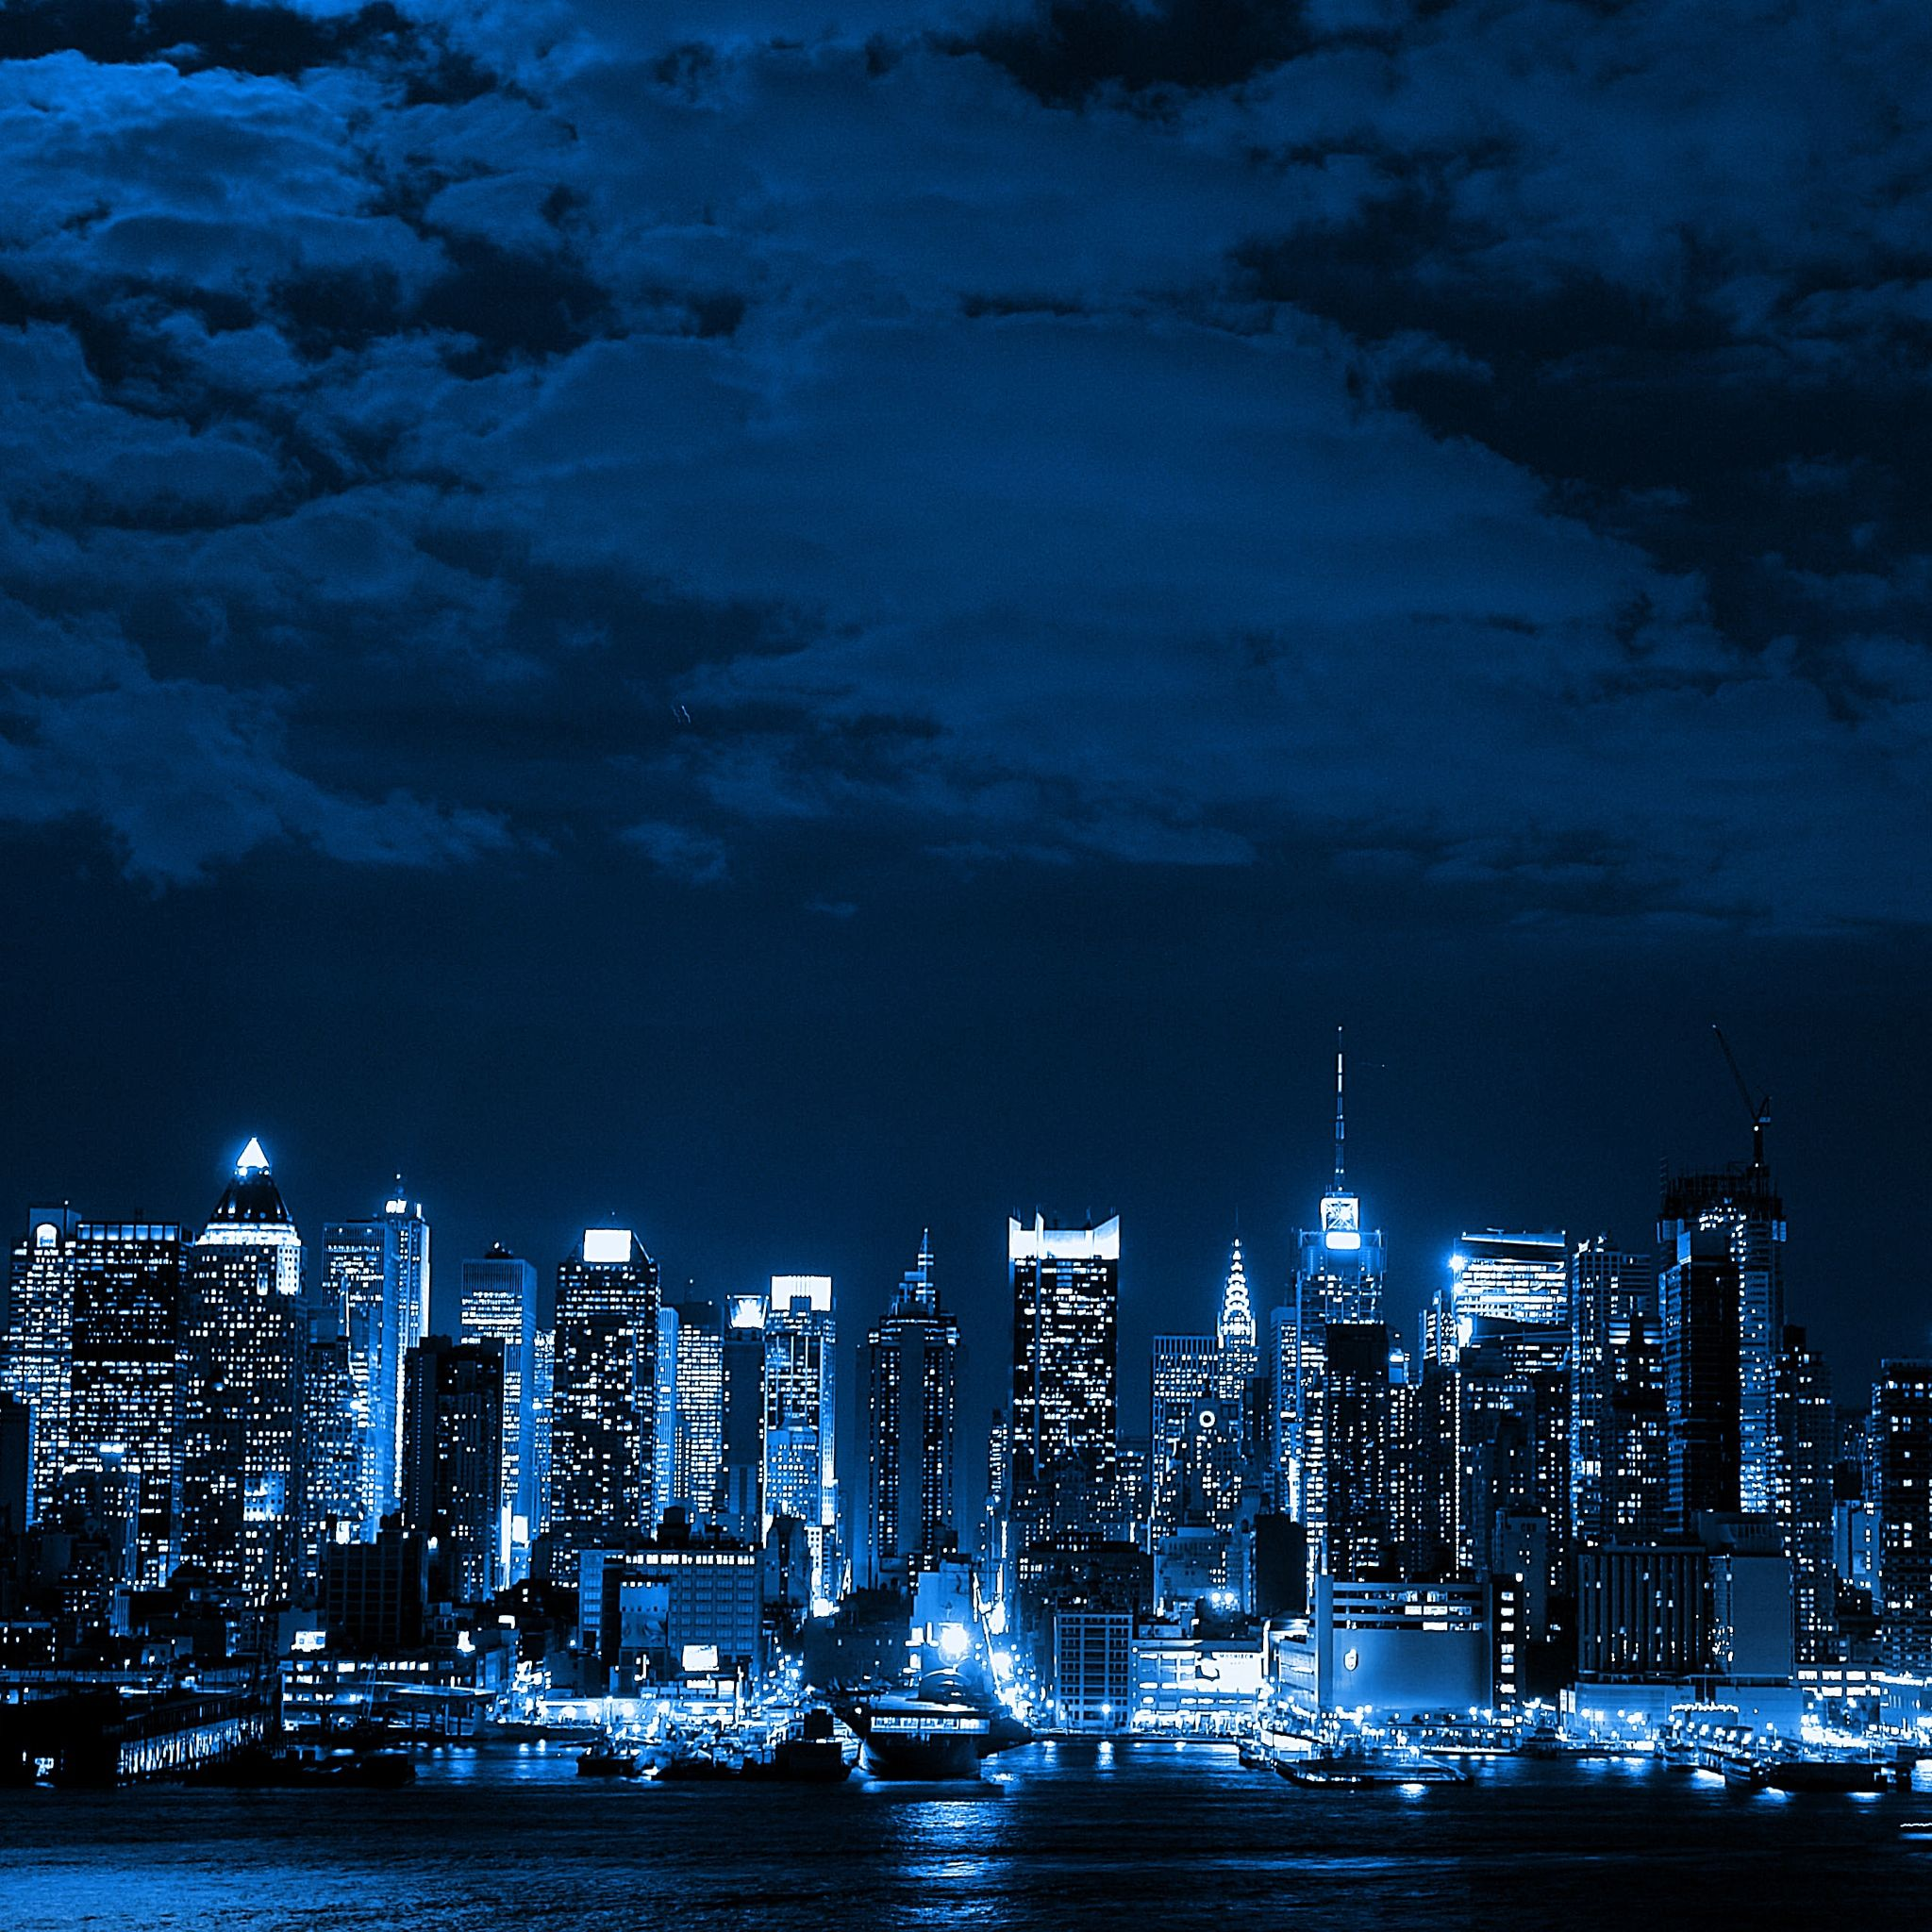 Blue And Black City Cityscape Wallpaper City Wallpaper Blue City